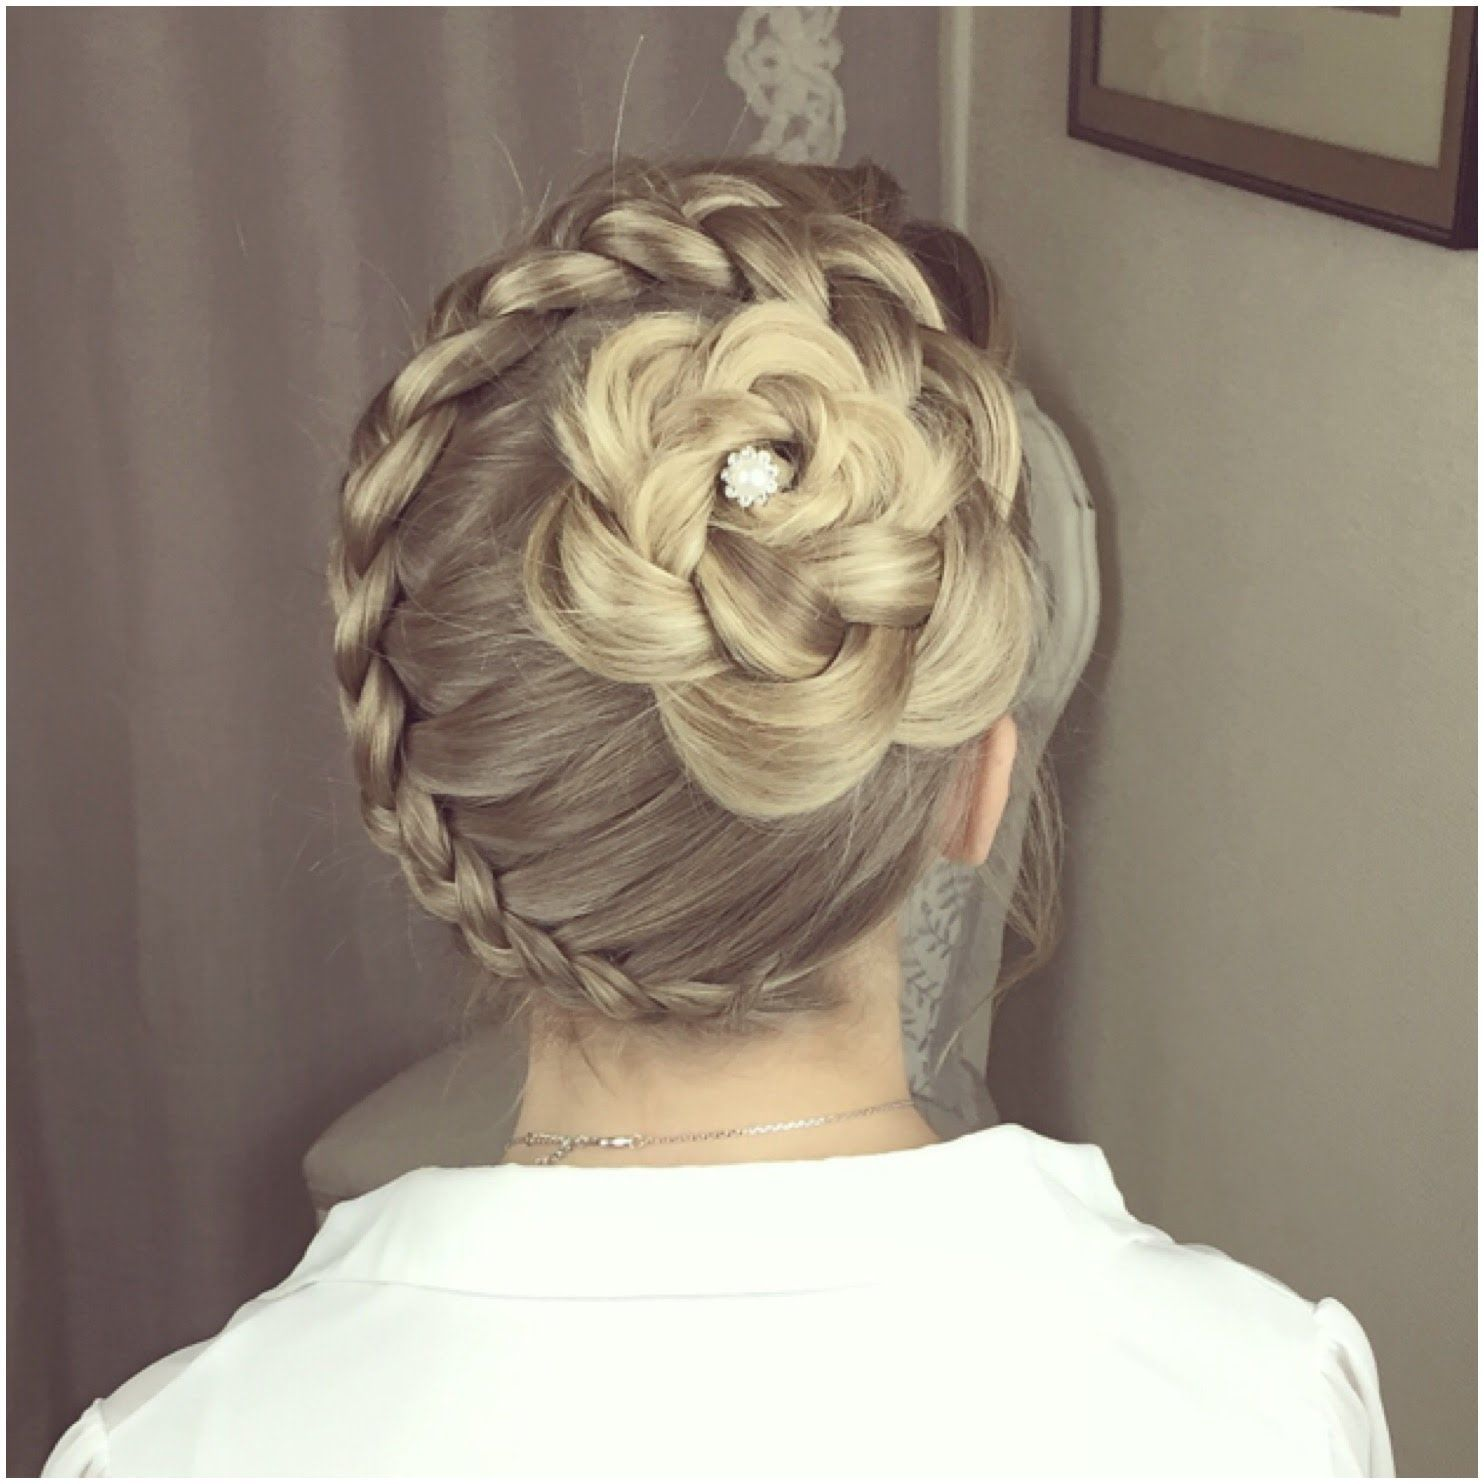 The Climbing Flower Braid by SweetHearts Hair Design | Sweethearts hair design, Flower braids ...